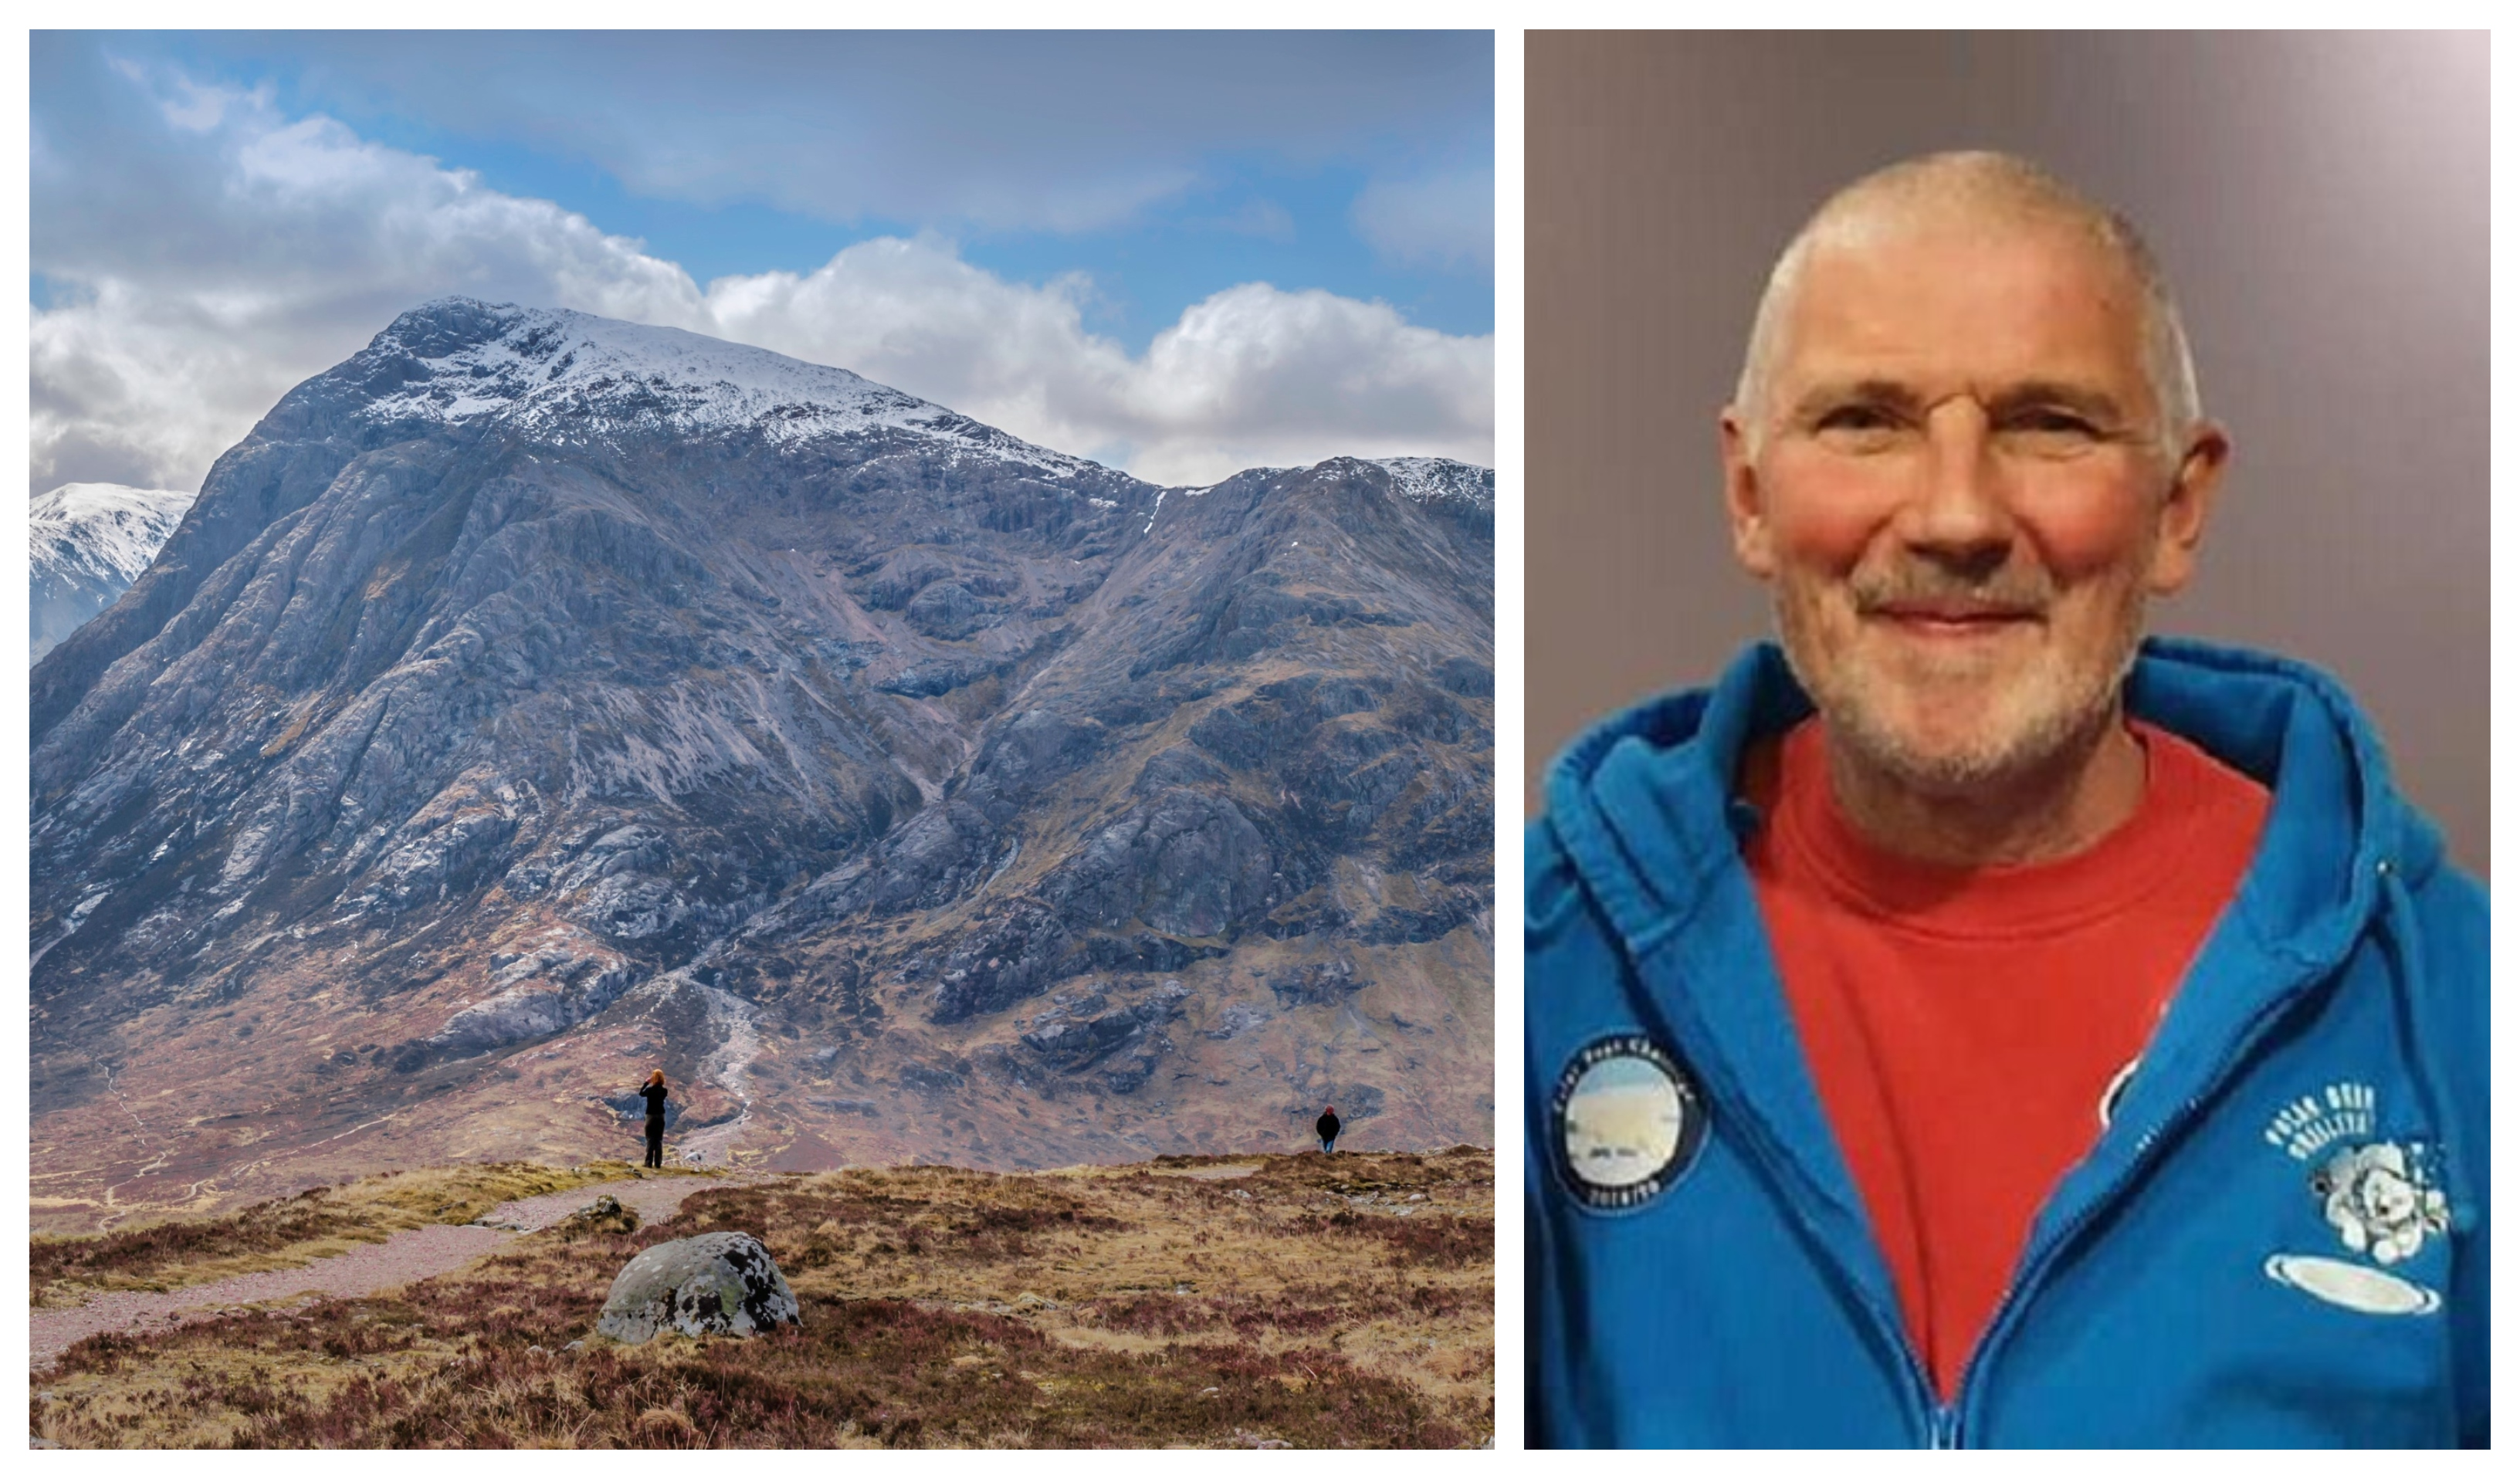 Terence Rooney died on the Glencoe mountain range.